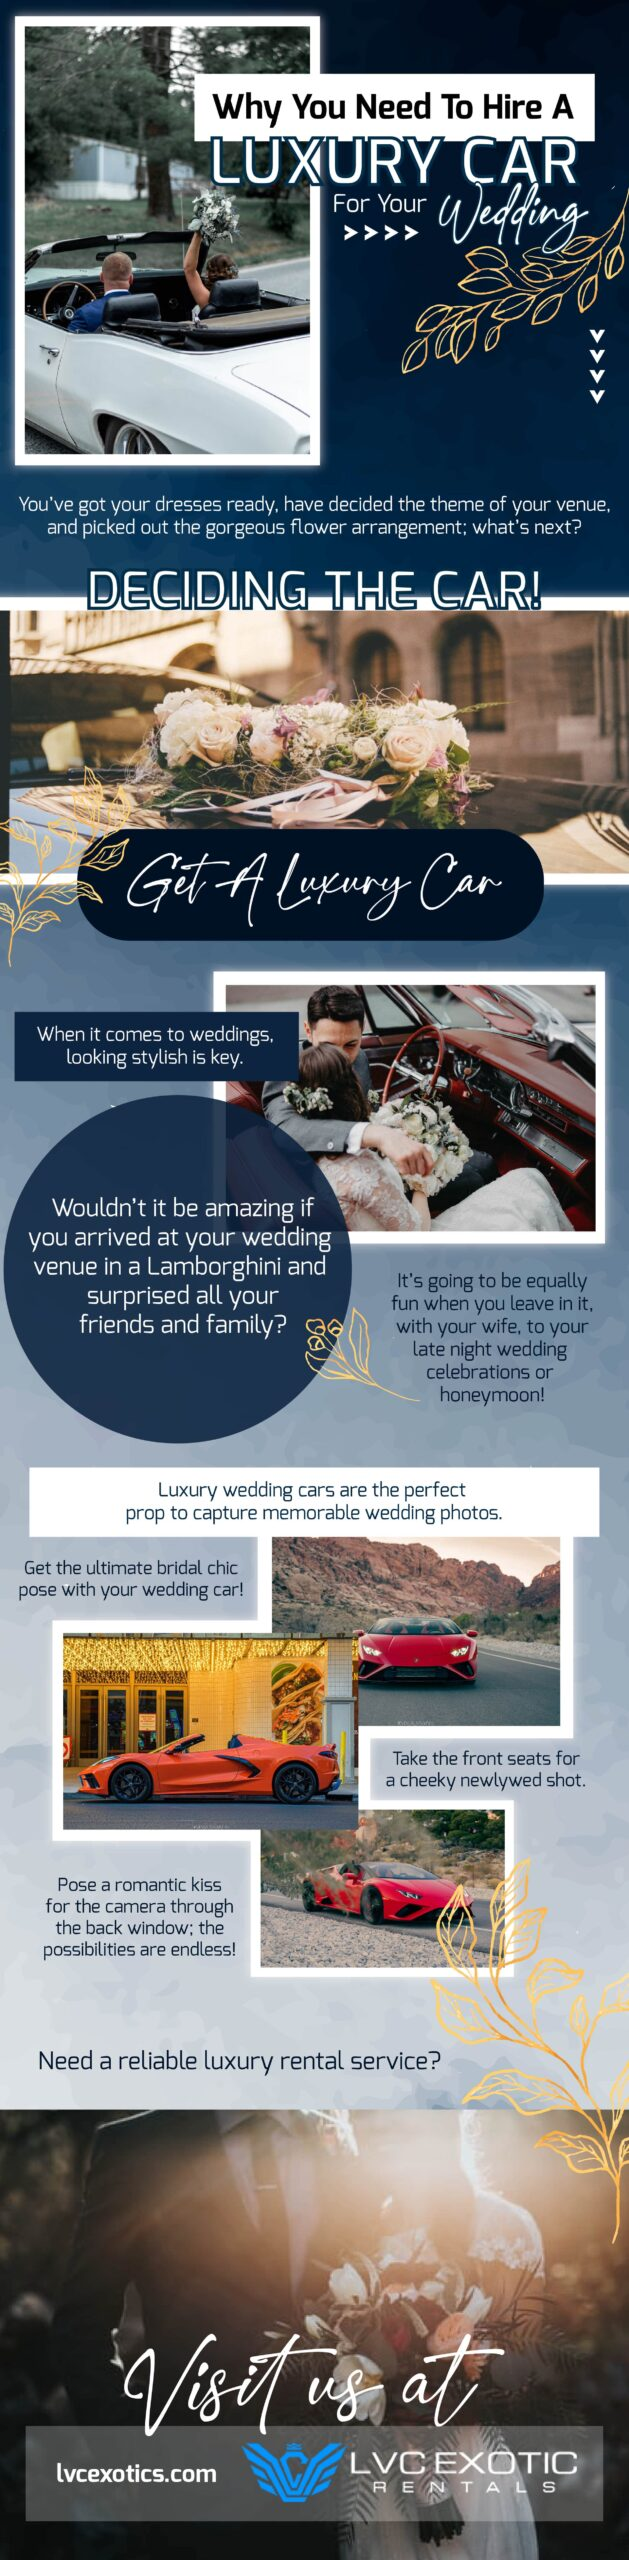 Luxury Car For Your Wedding